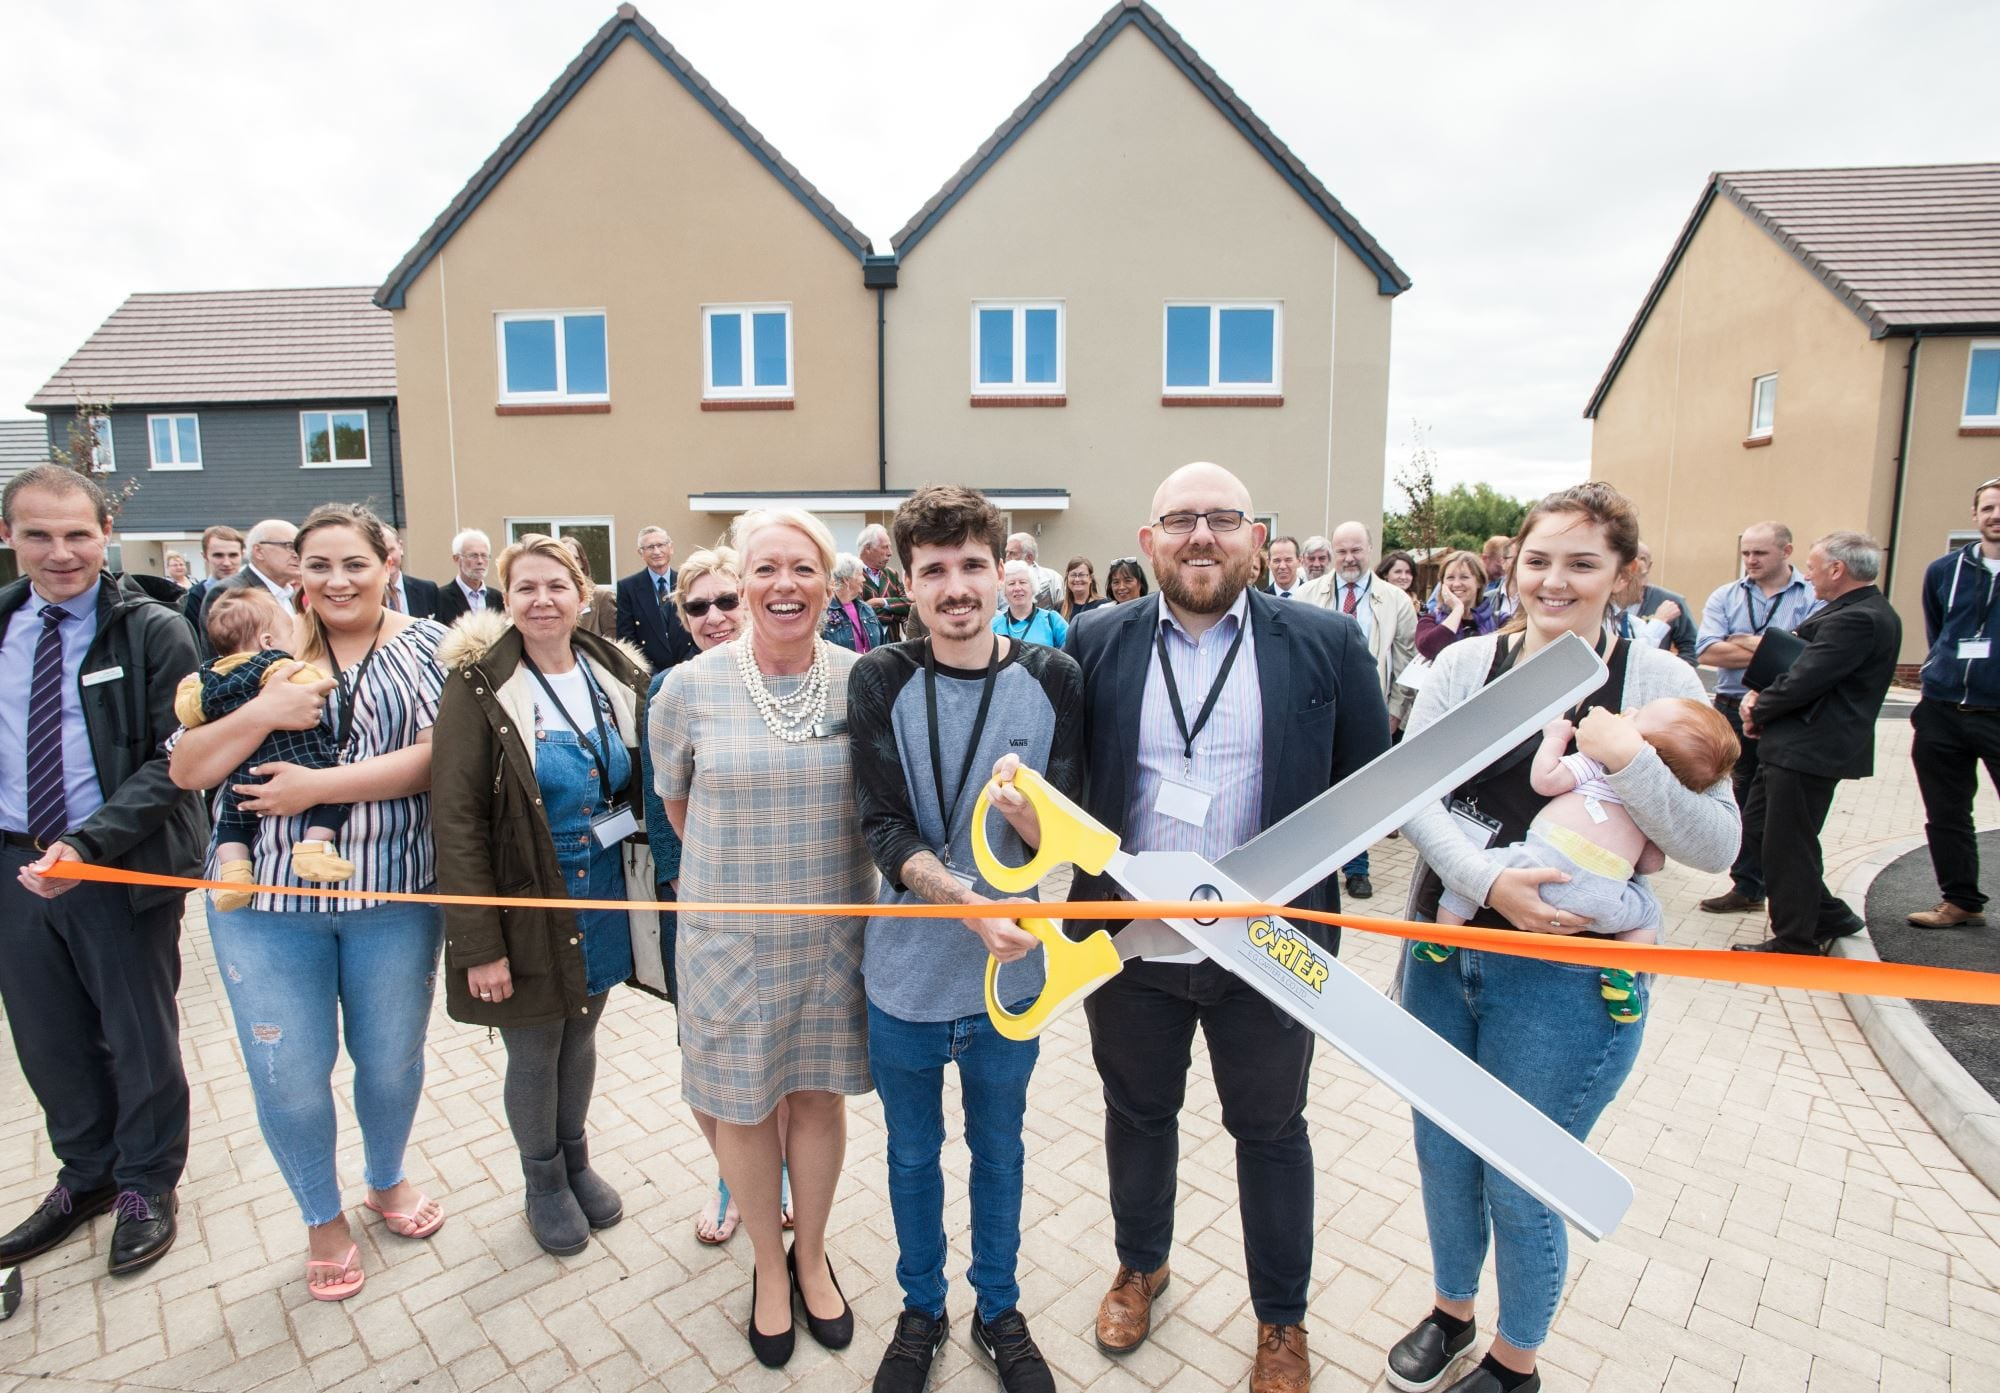 South Western Housing Society, Tuckers Close. An off-gas grid new build development of 12 affordable homes